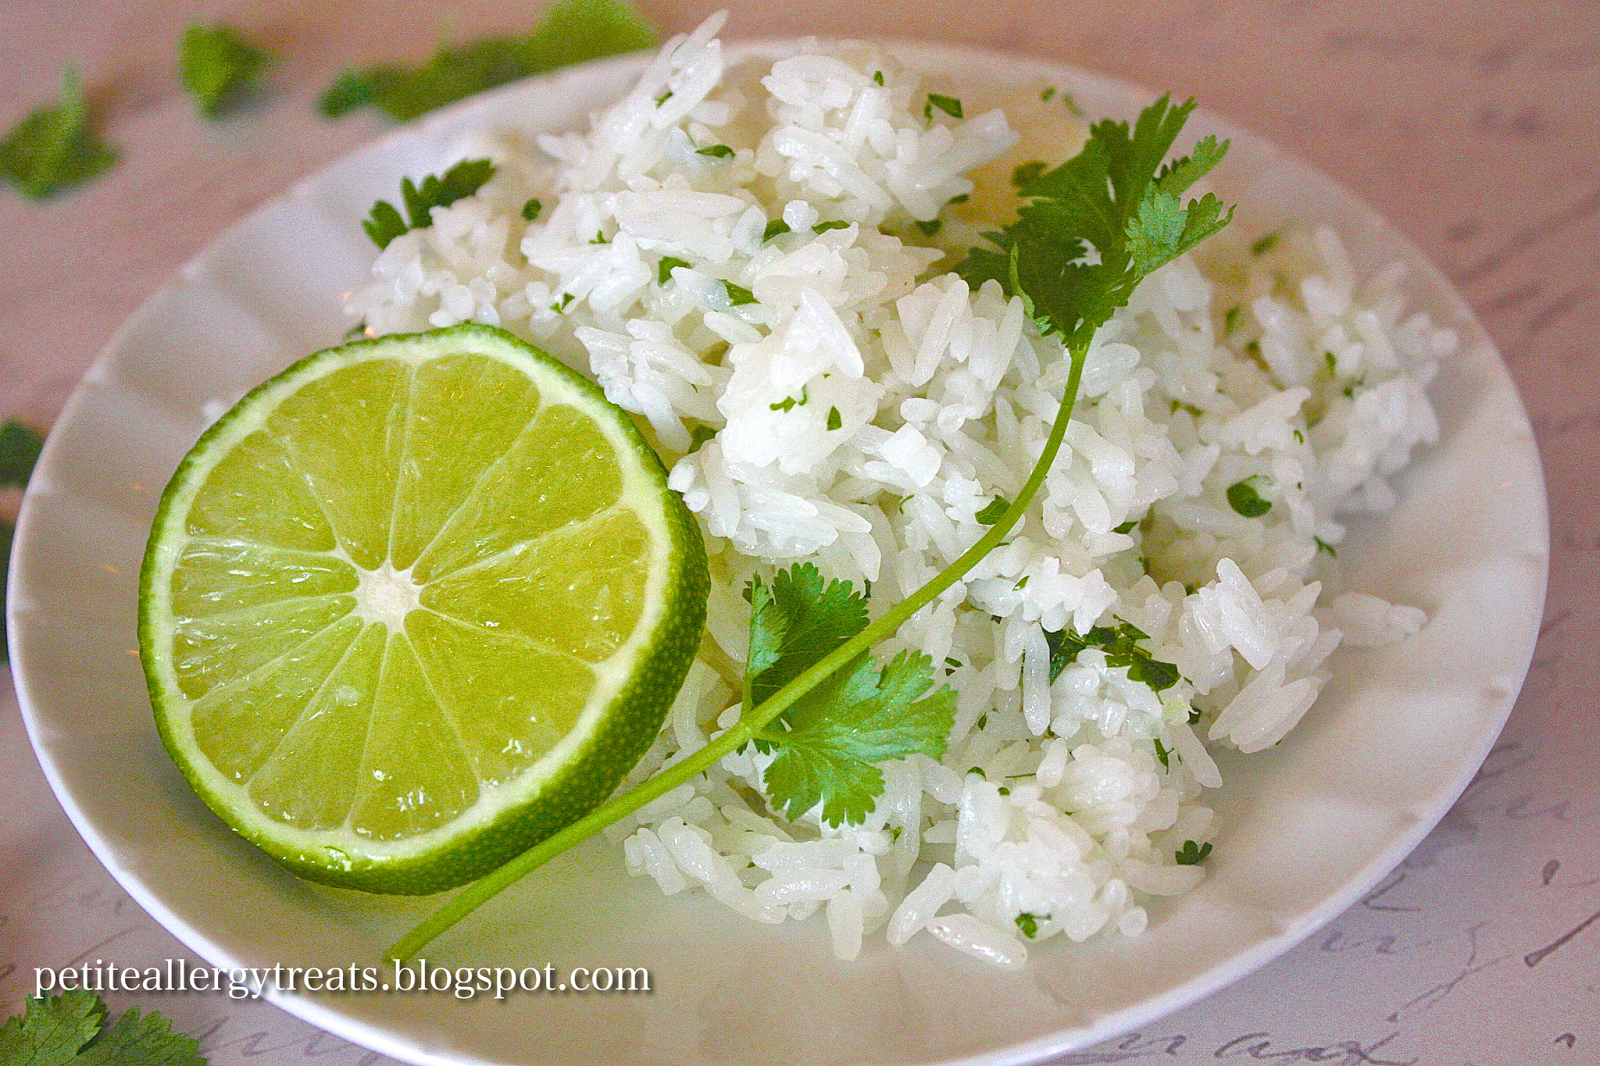 "... Treats: Gluten Free Cilantro Lime Rice ""Chipotle Copycat"" recipe"